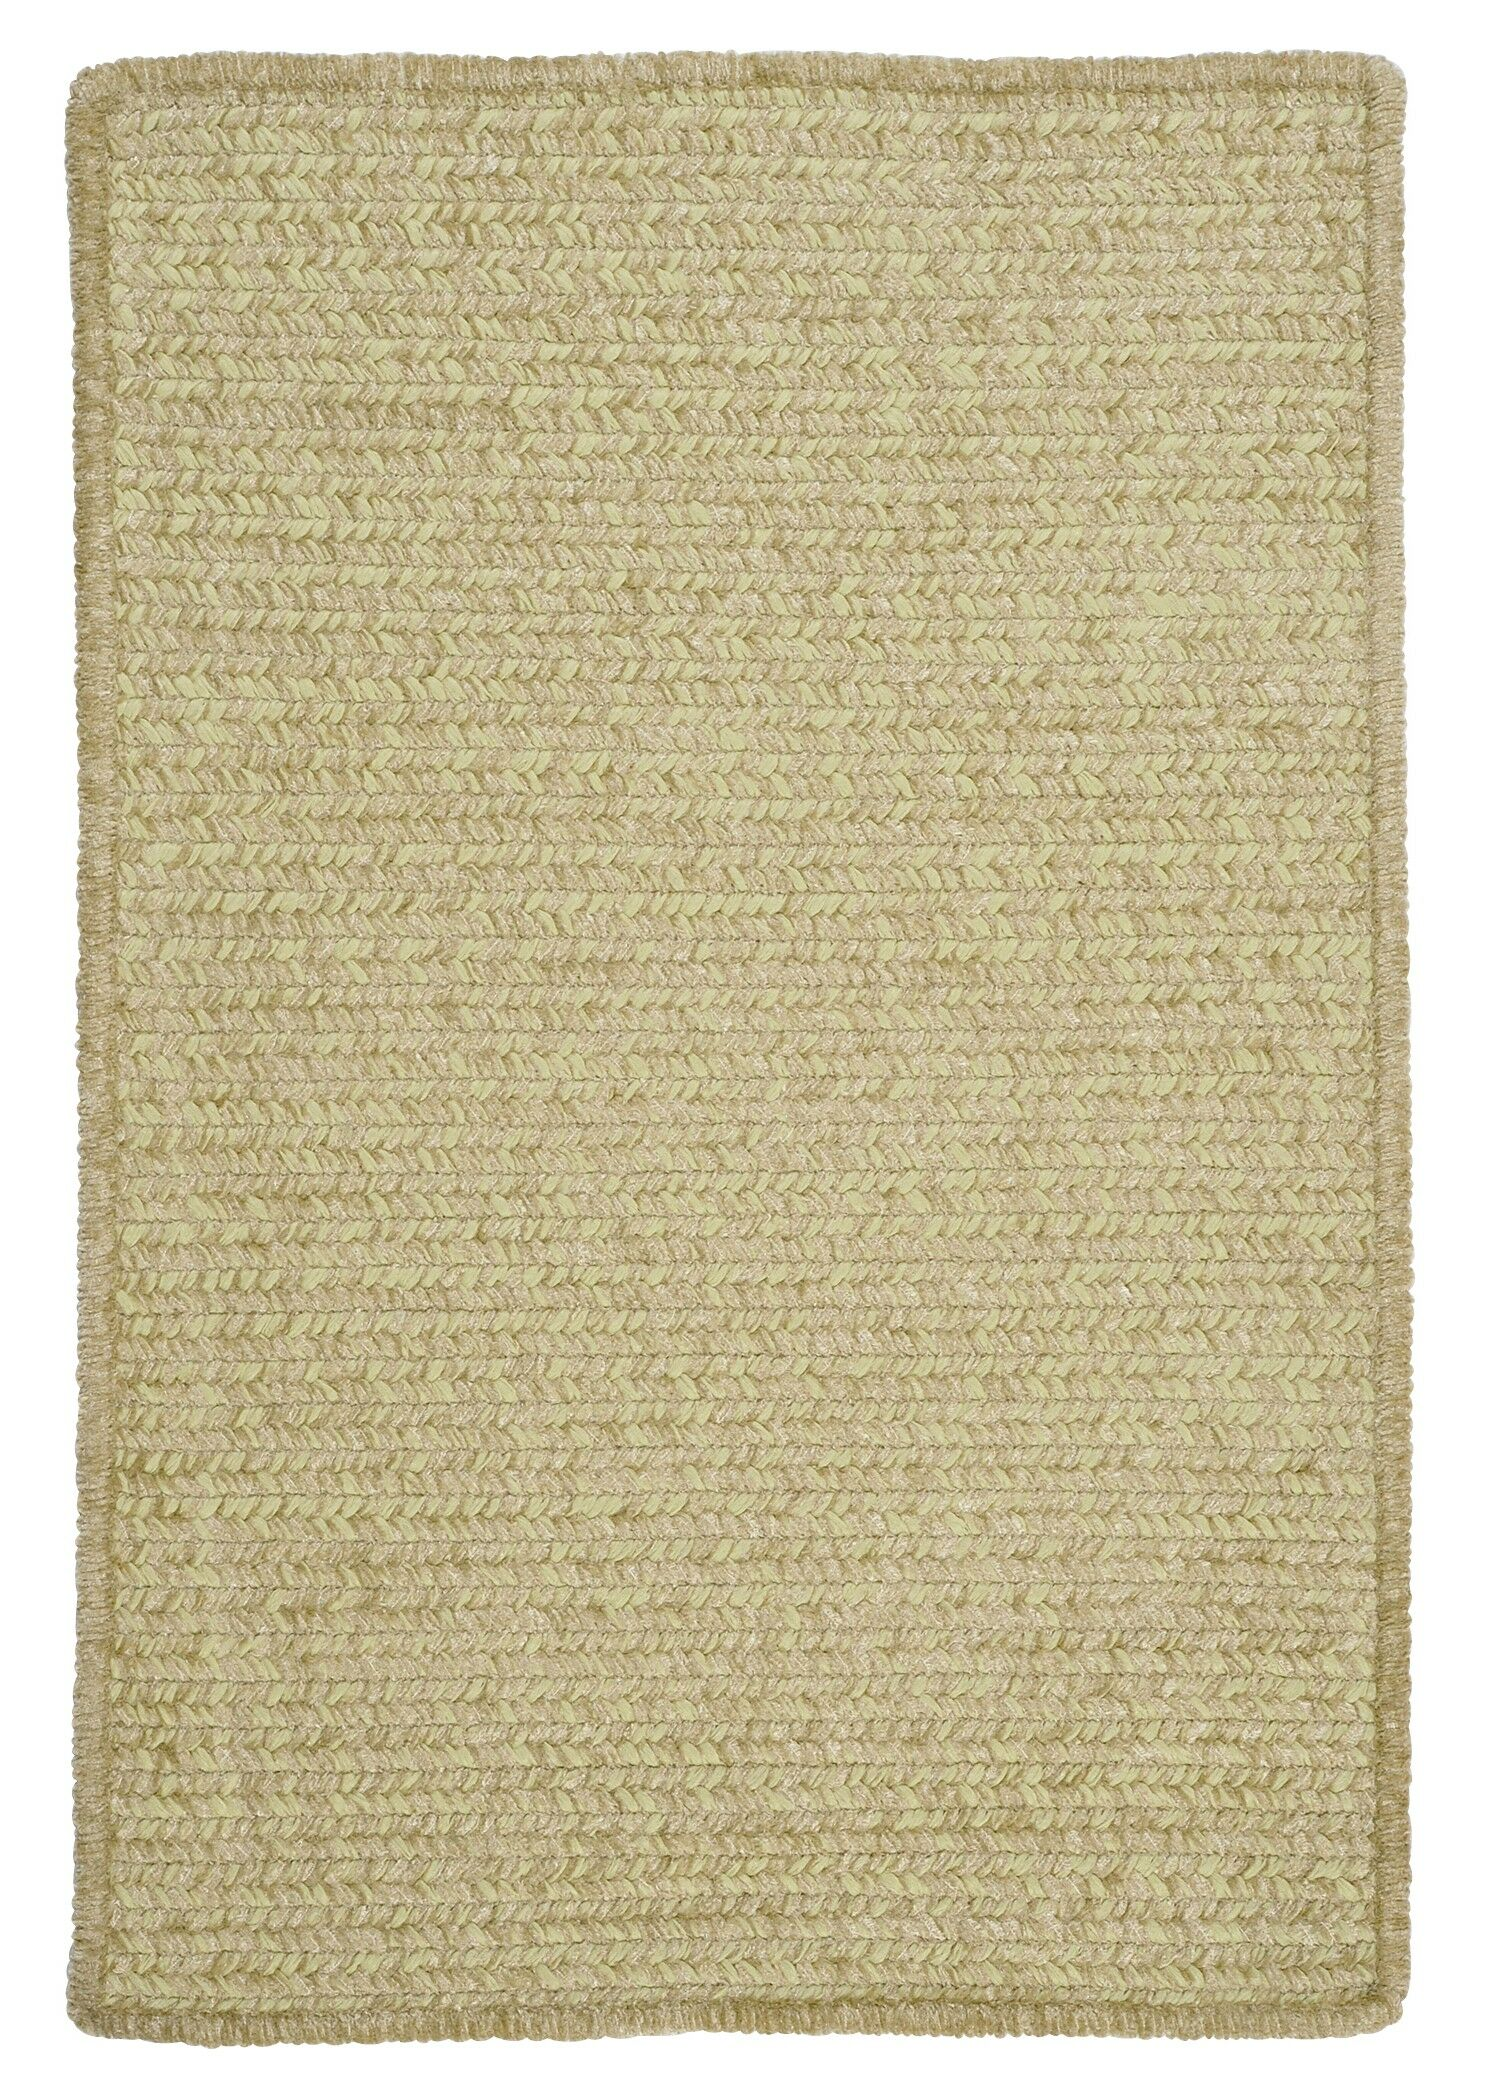 Gibbons Sprout Green Indoor/Outdoor Area Rug Rug Size: Rectangle 5' x 8'